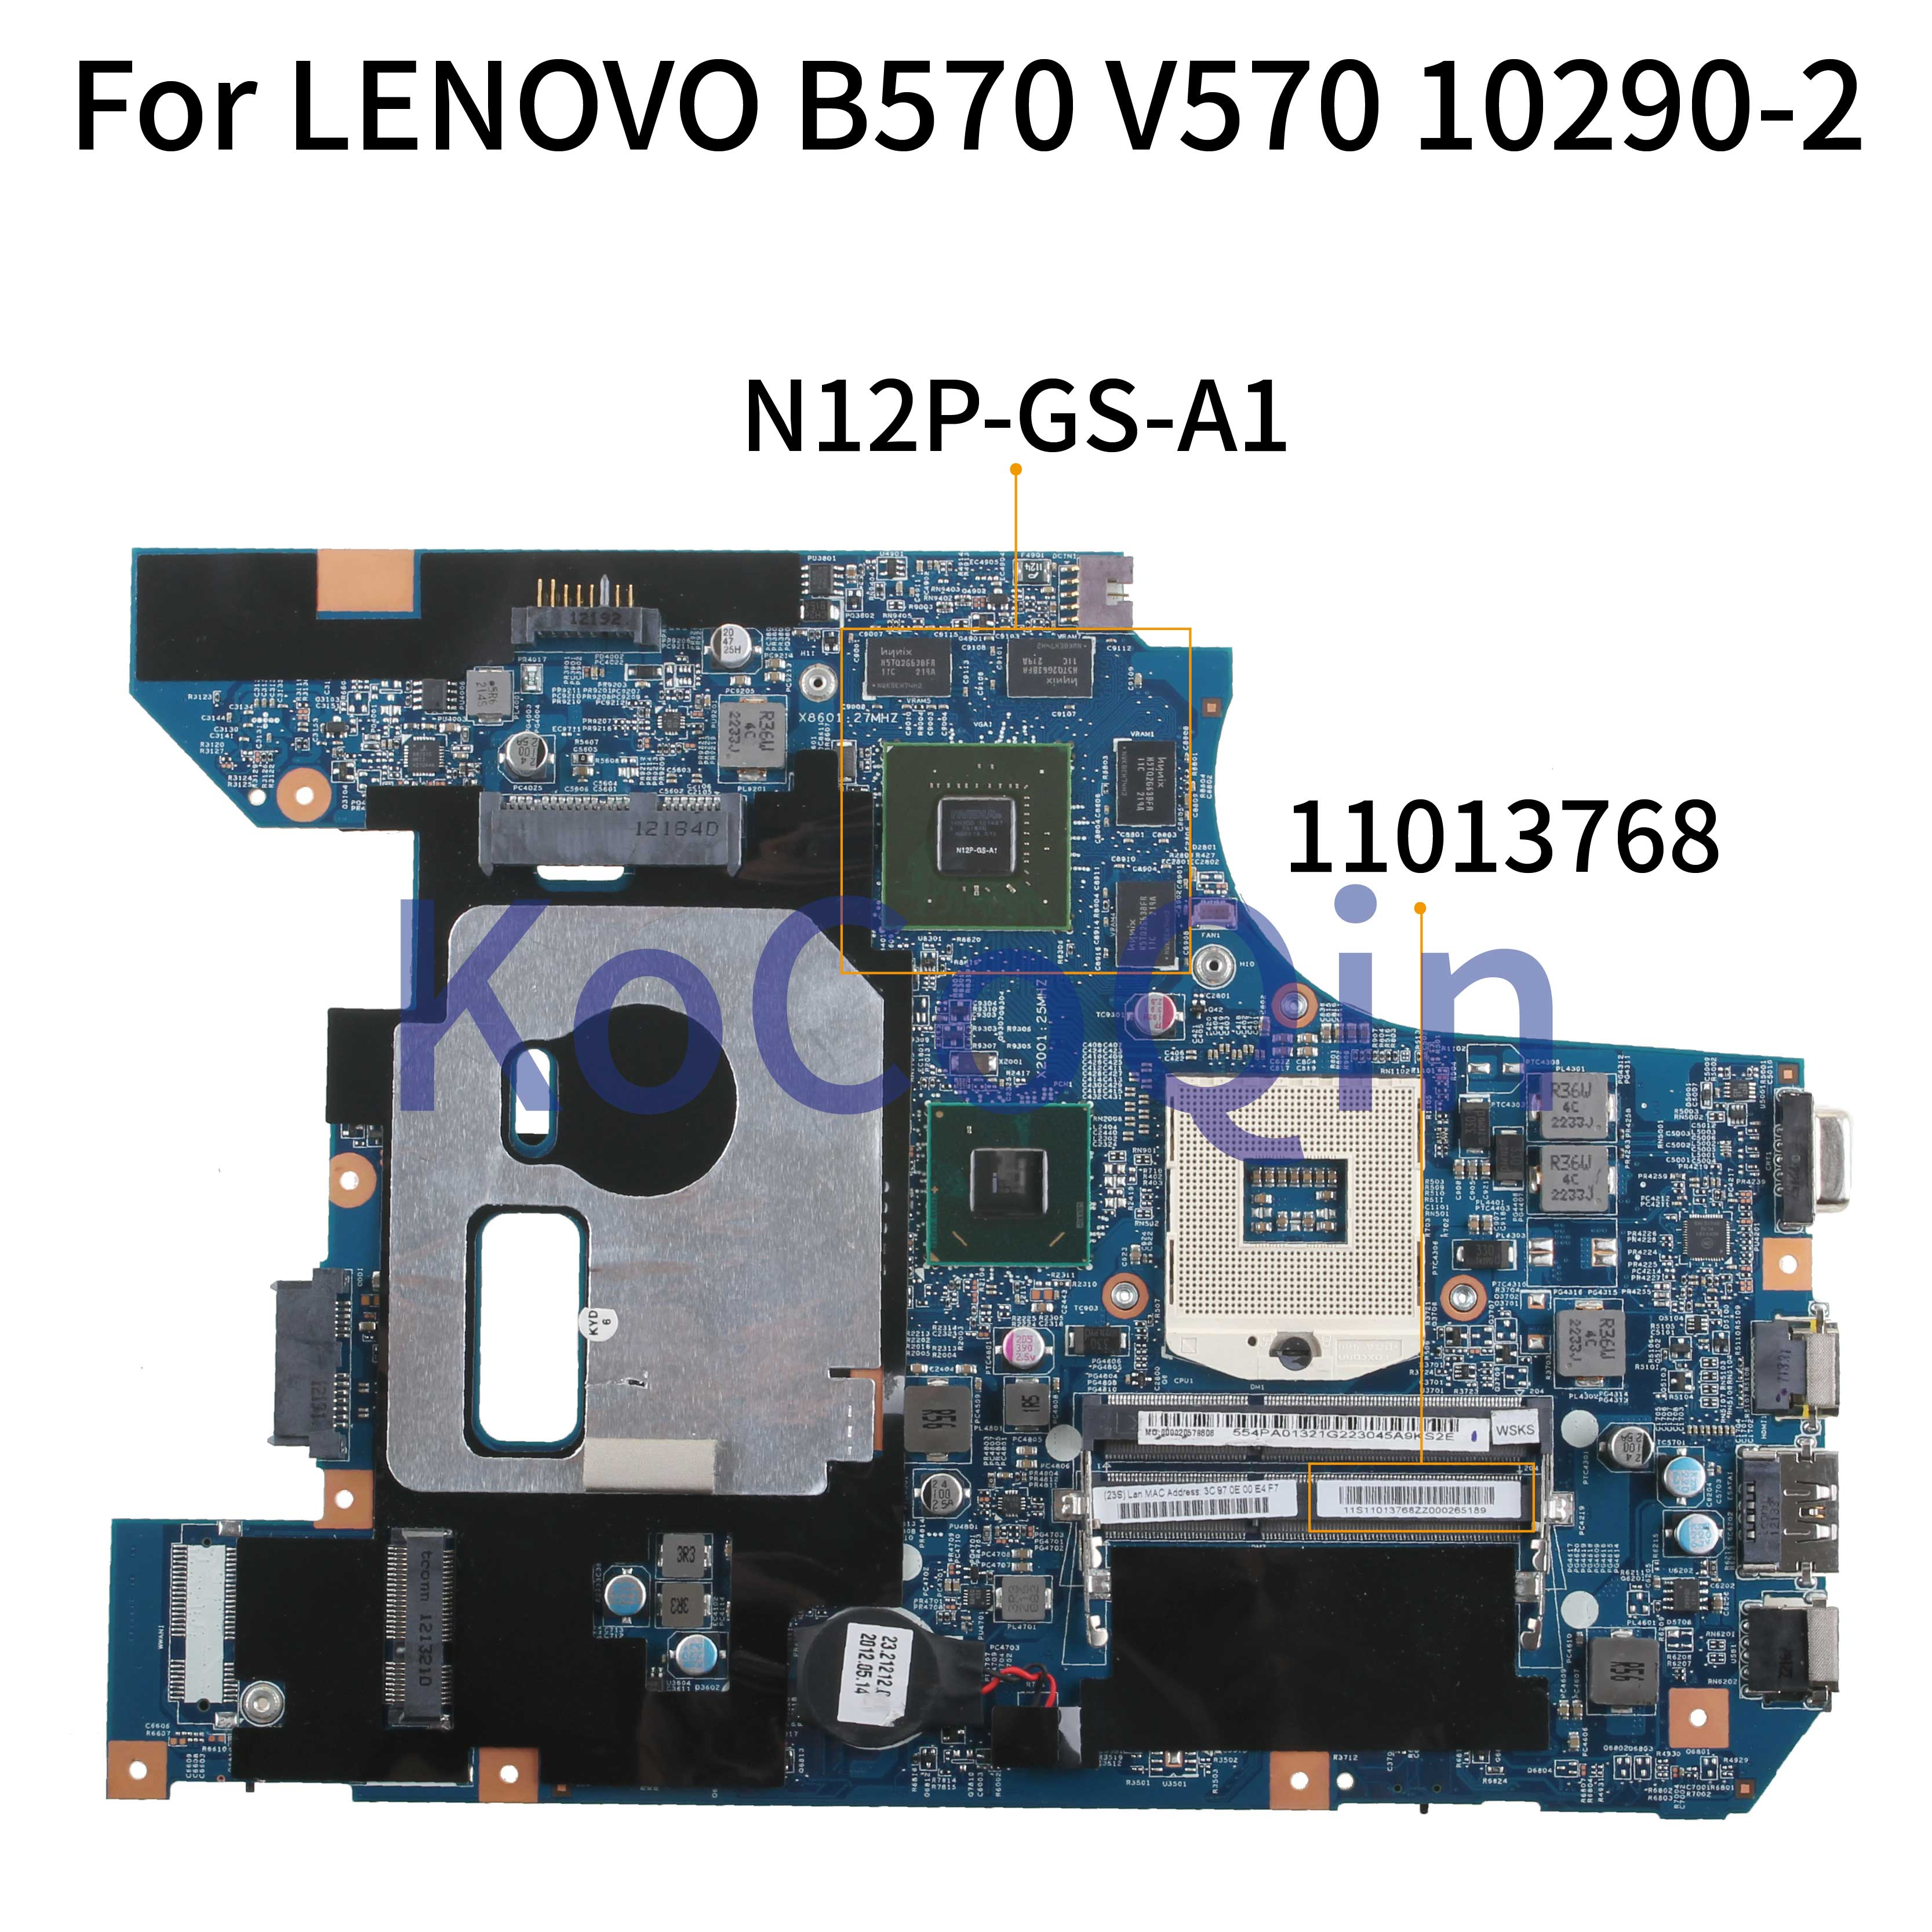 KoCoQin Laptop Motherboard For LENOVO B570 V570 B570Z HM65 N12P-GS-A1 Mainboard 10290-2 48.4PA01.021 LZ57